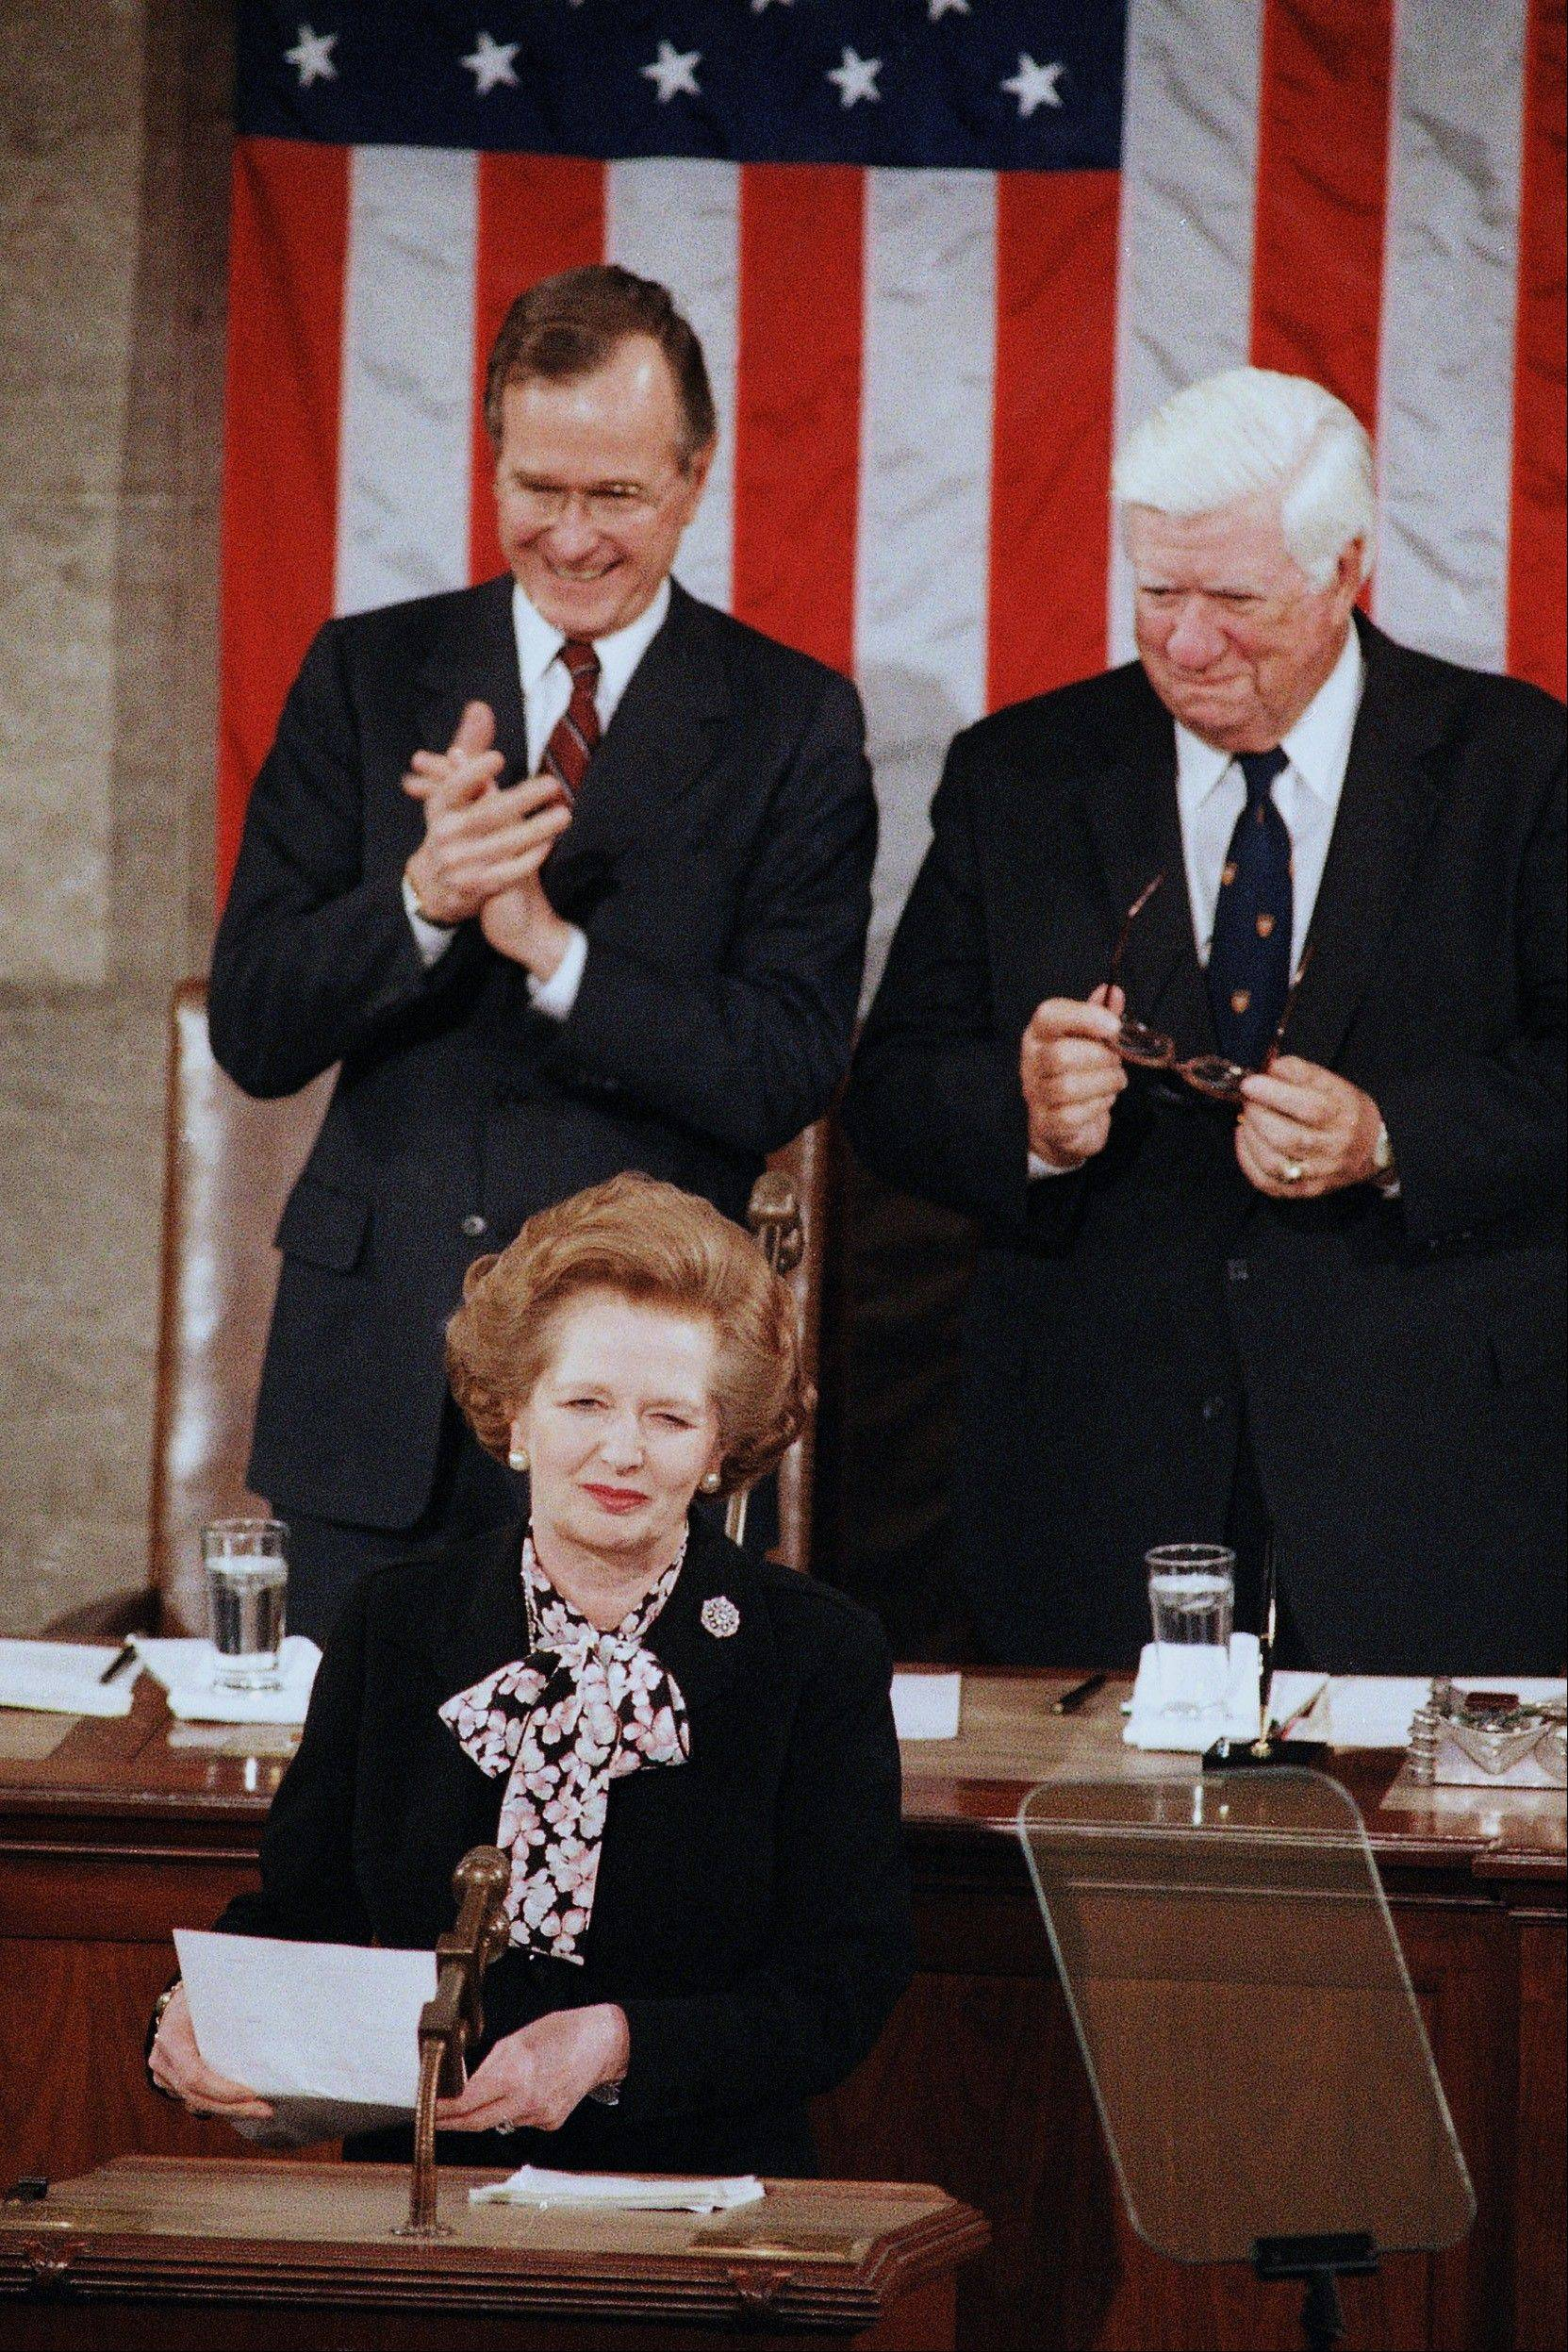 In a Feb. 20, 1985 file photo, British Prime Minister Margaret Thatcher is applauded by Vice President George Bush, left, as House Speaker Thomas P. O'Neill, Jr. looks on just before she addressed a joint meeting of the U.S. Congress, in Washington. Thatchers former spokesman, Tim Bell, said that the former British Prime Minister Margaret Thatcher had died Monday morning, April 8, 2013, of a stroke. She was 87.